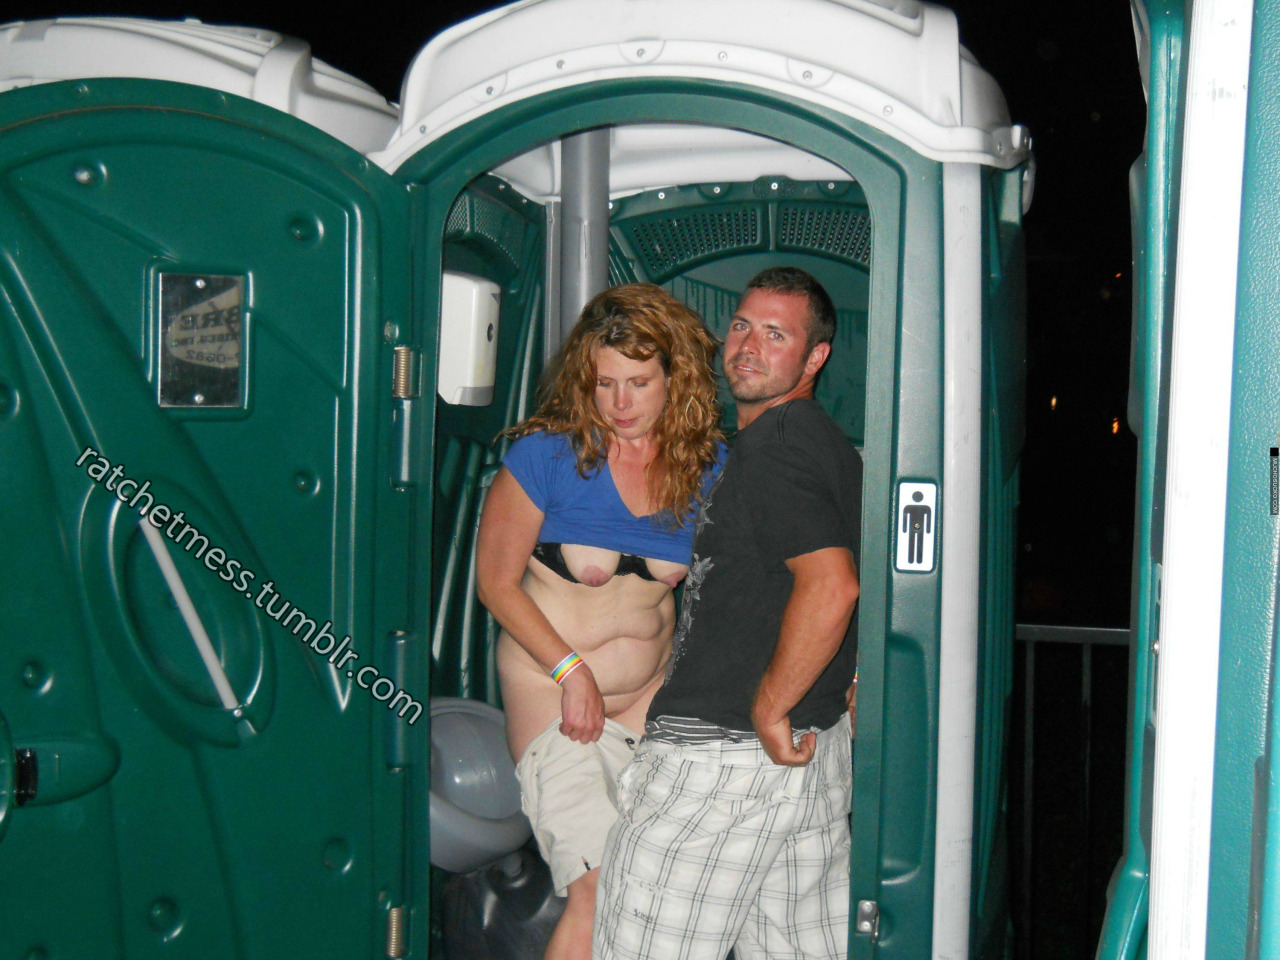 Port-O-Potties: For when shes not classy enough for behind a dumpster